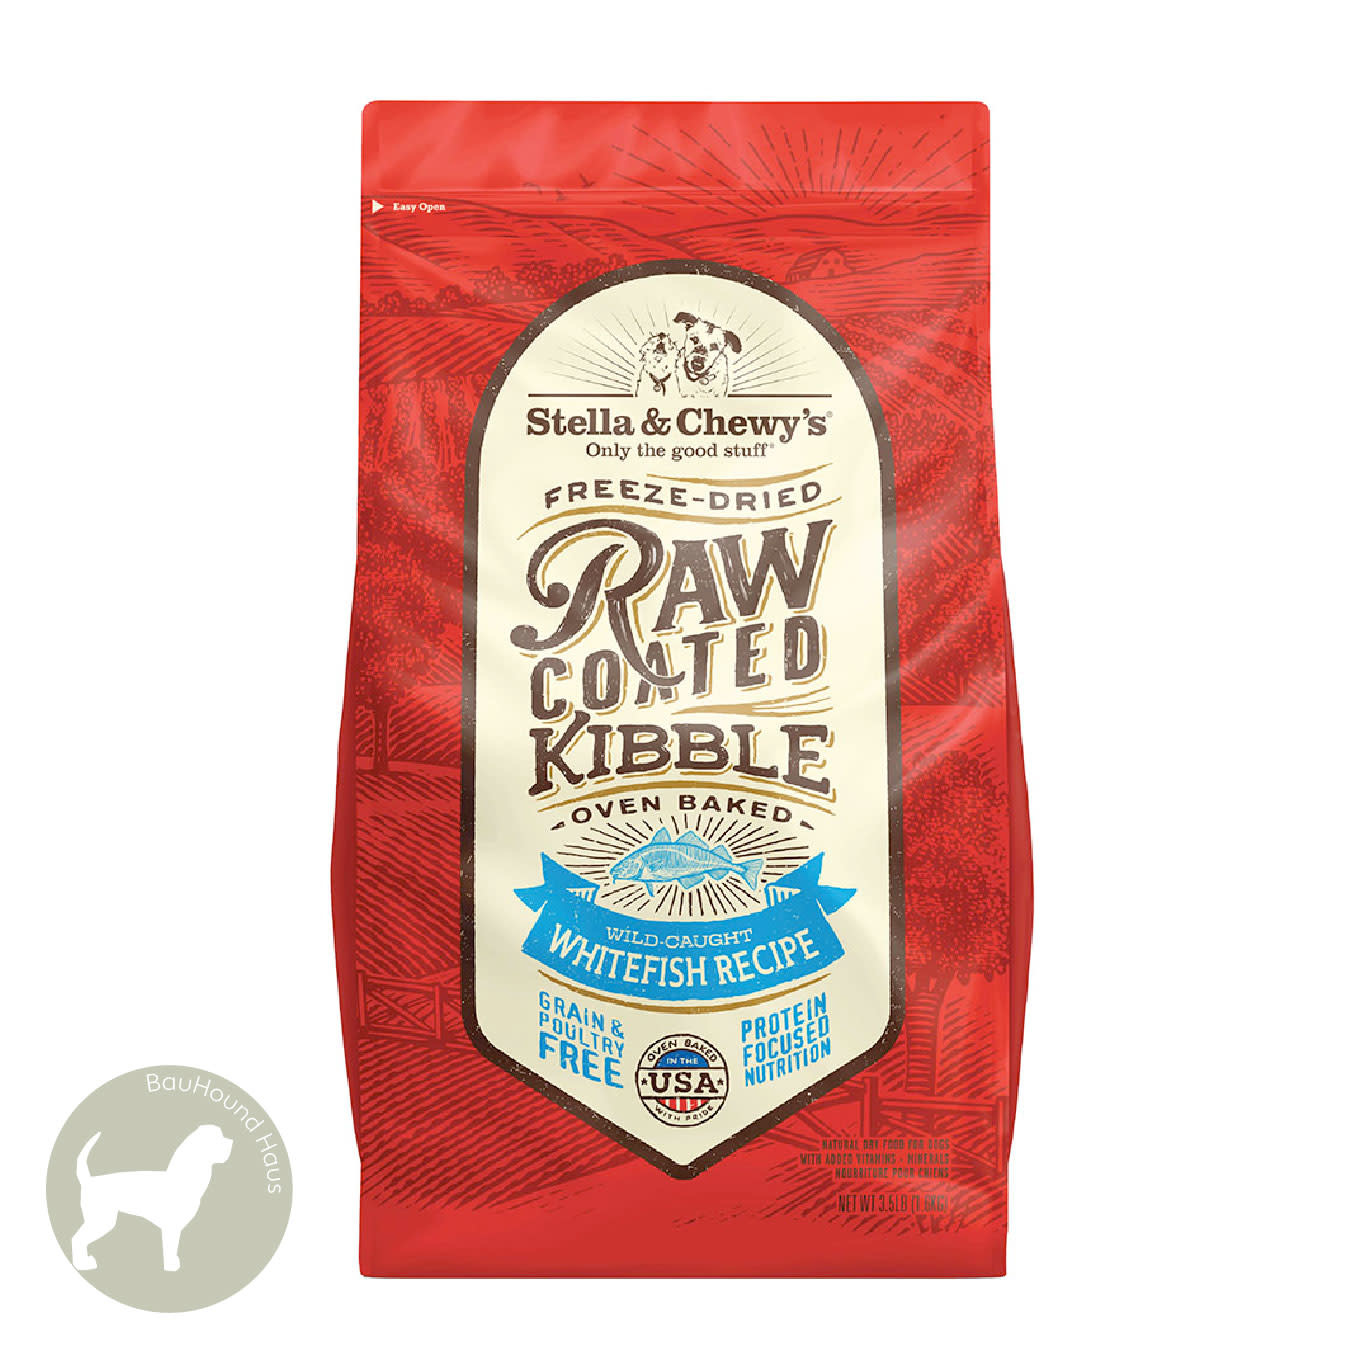 Stella & Chewy's Stella & Chewy's Freeze Dried Raw Coated Kibble Whitefish Recipe 3.5lb